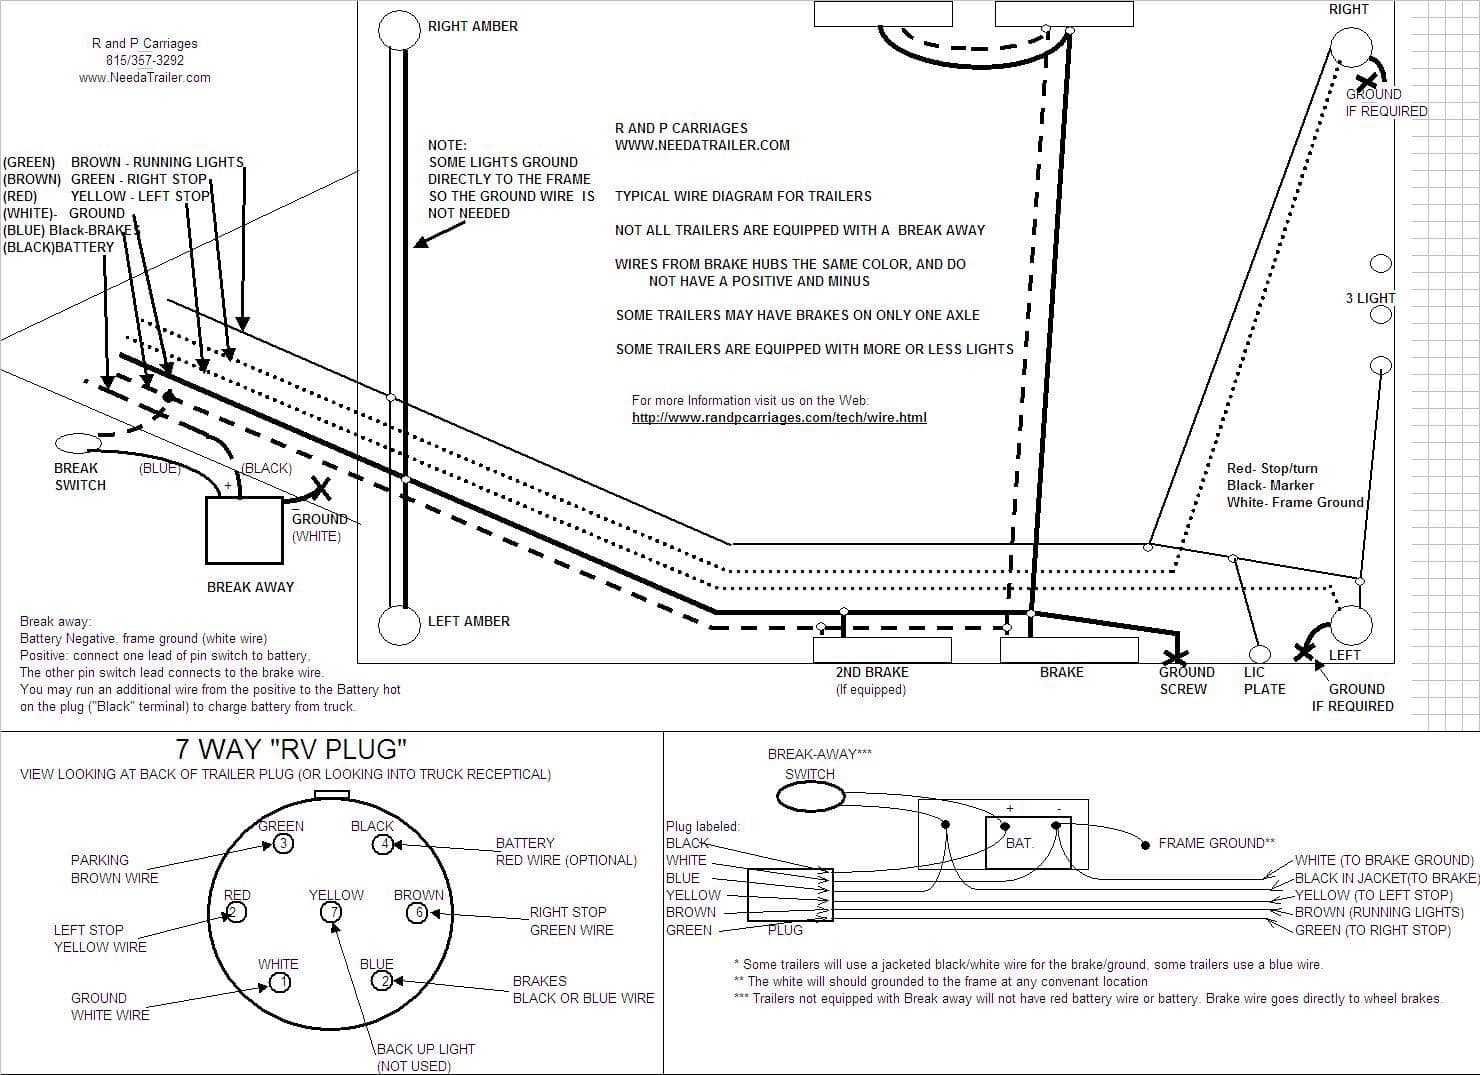 WRG-9165] Wells Cargo Trailer Electrical Wiring Diagram on